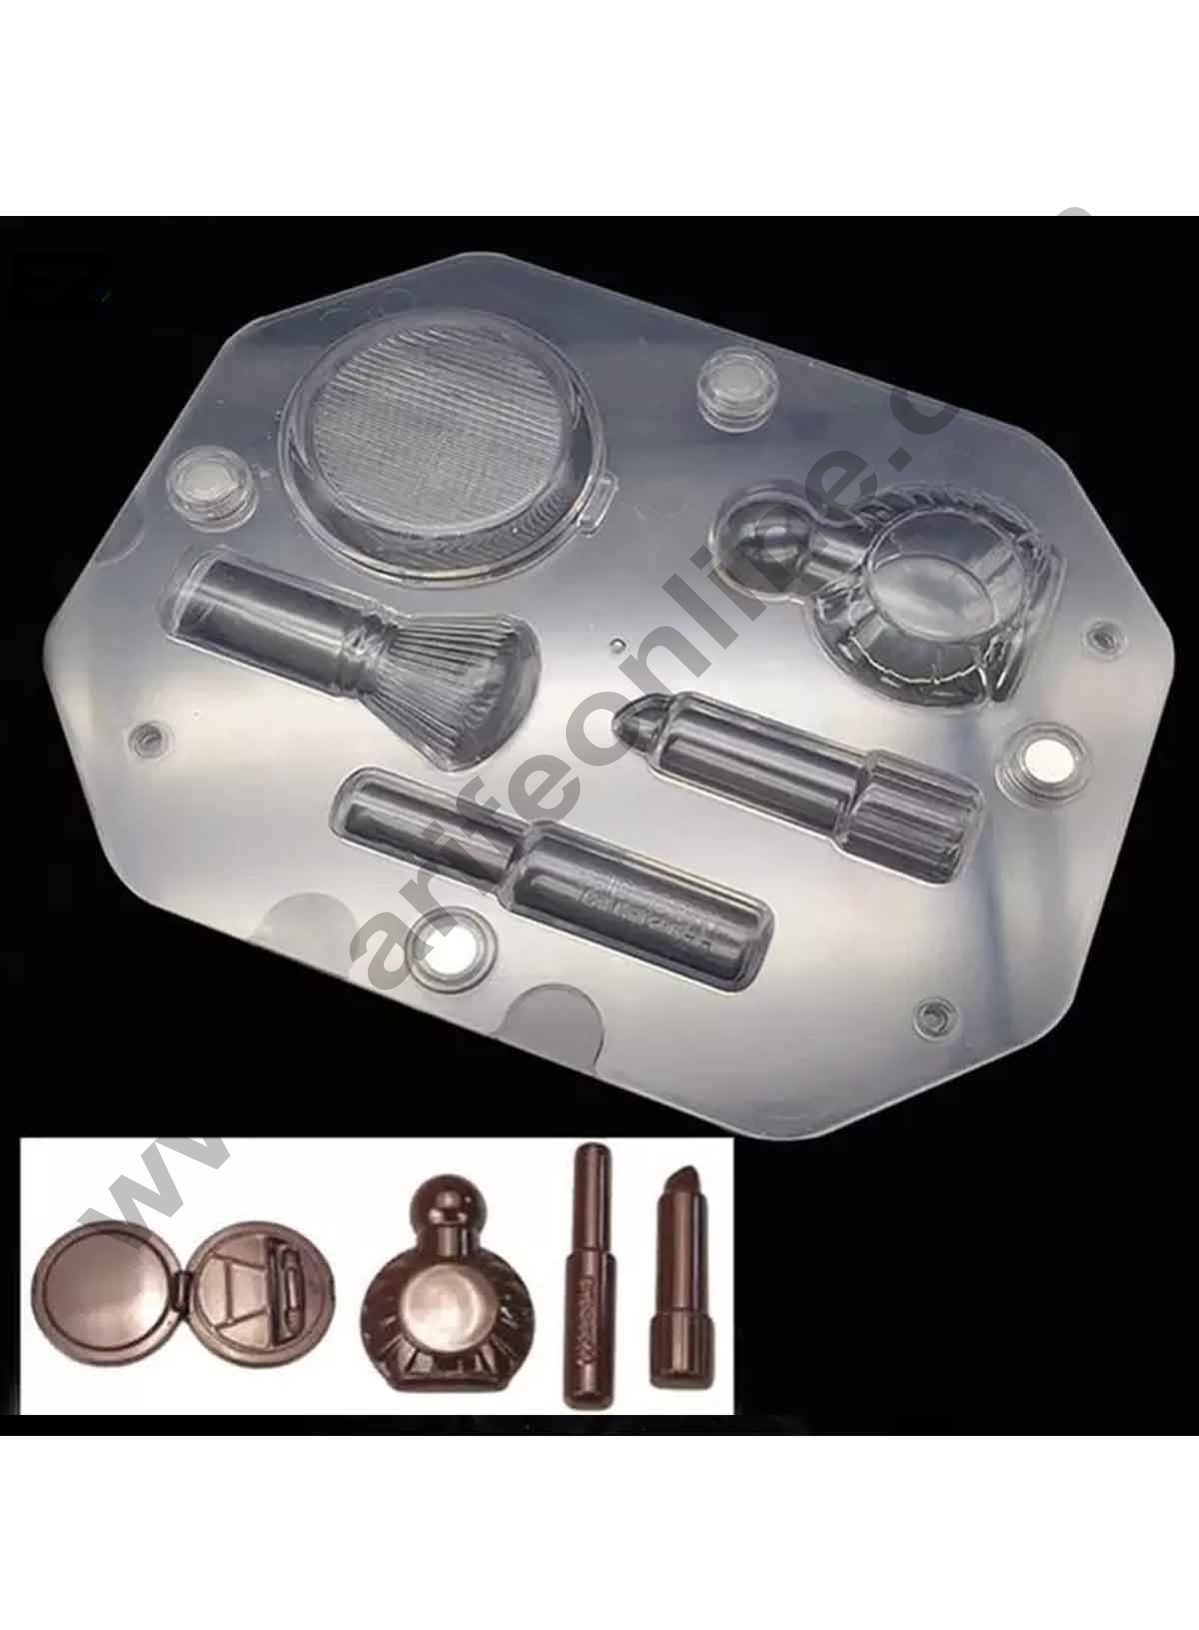 Cake Decor Polycarbonate 3D Make Up Kit Chocolate Mold Cake Decorating Chocolate Mould Tools